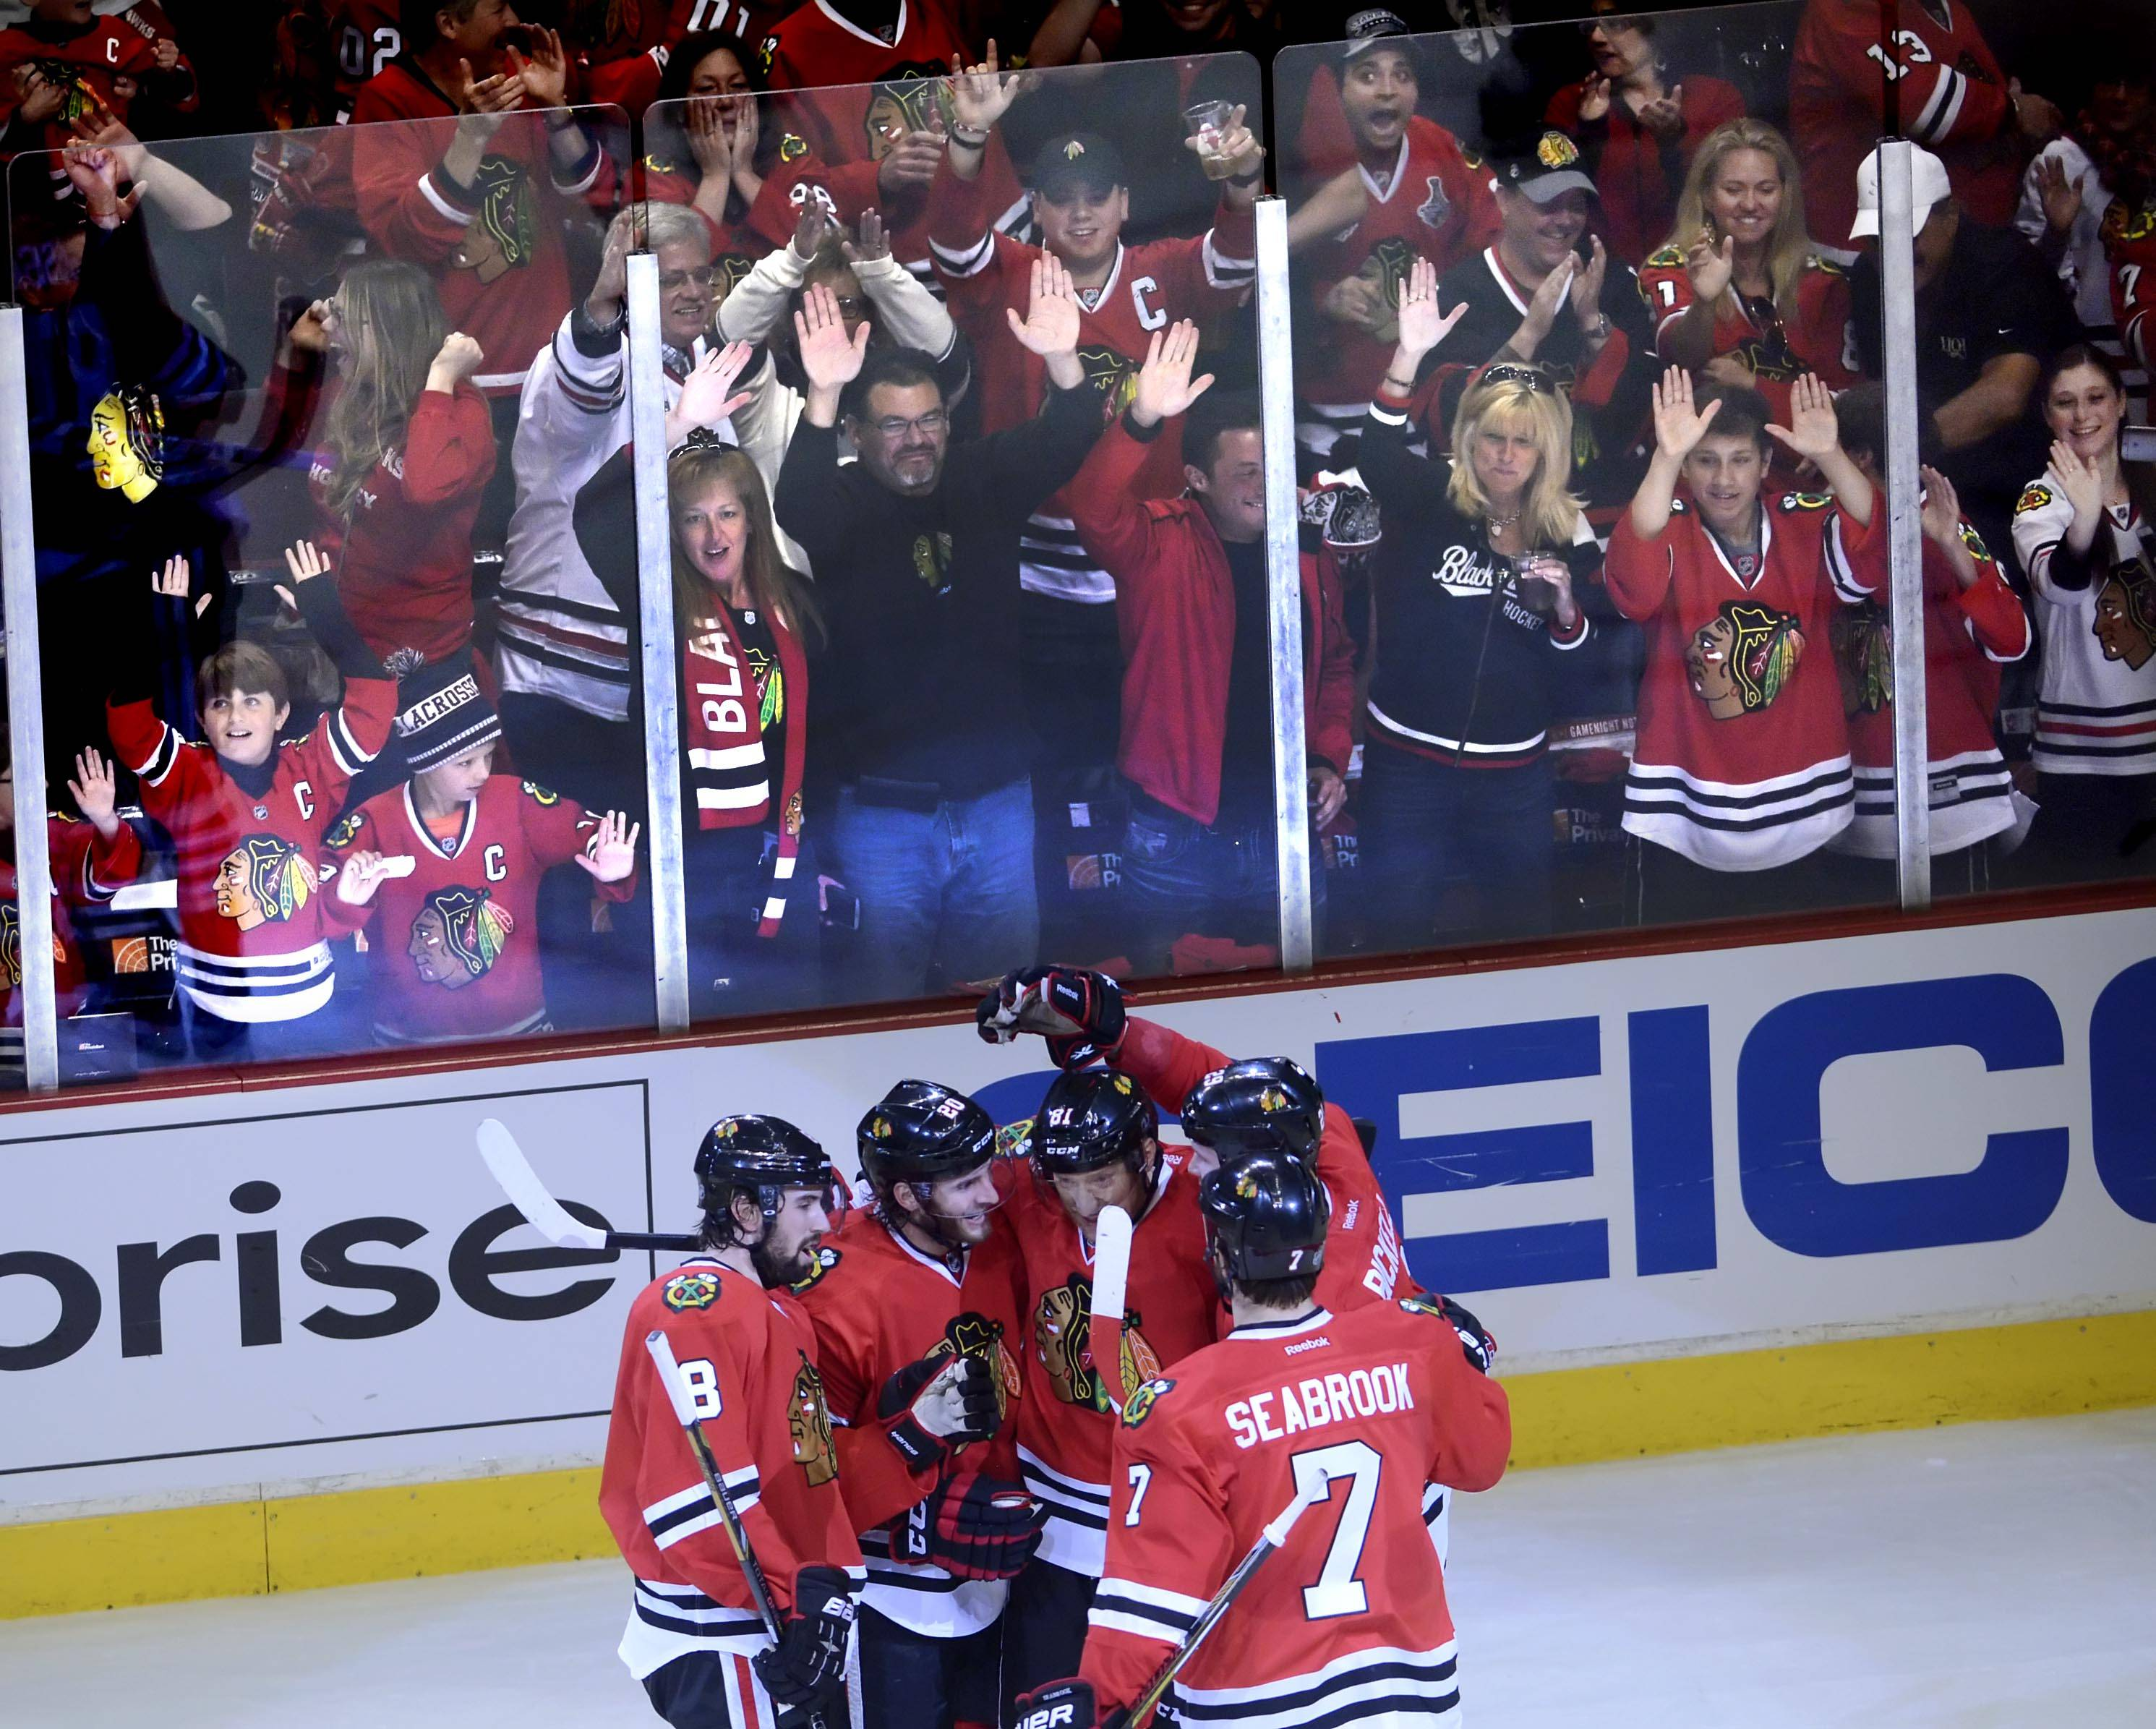 To the delight of the some of the 272nd straight capacity crowd (regular and postseason) at the United Center, the Blackhawks enjoy a group hug after Brandon Saad, second from left, scores in the second period Sunday in Game 2 against the Wild.